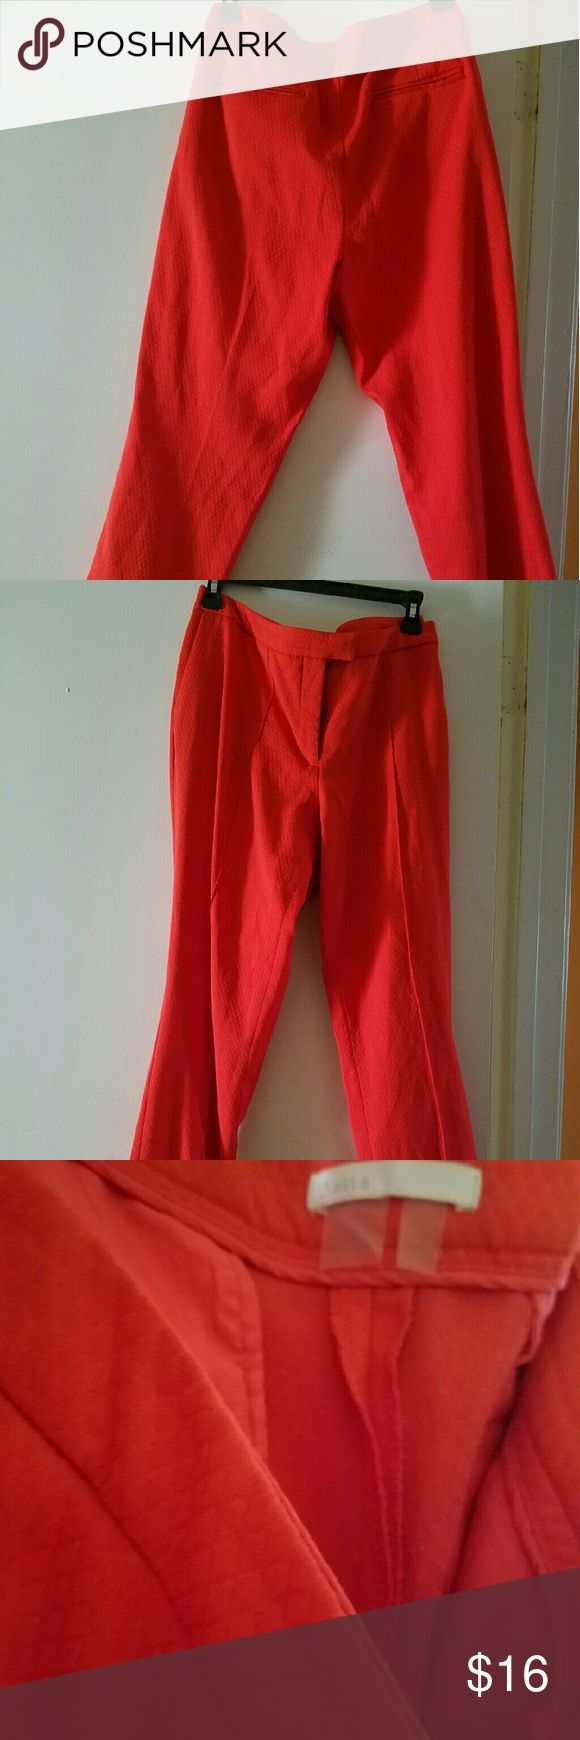 Trousers pants In very good condition, only worn 3 times. dalia Pants Trousers